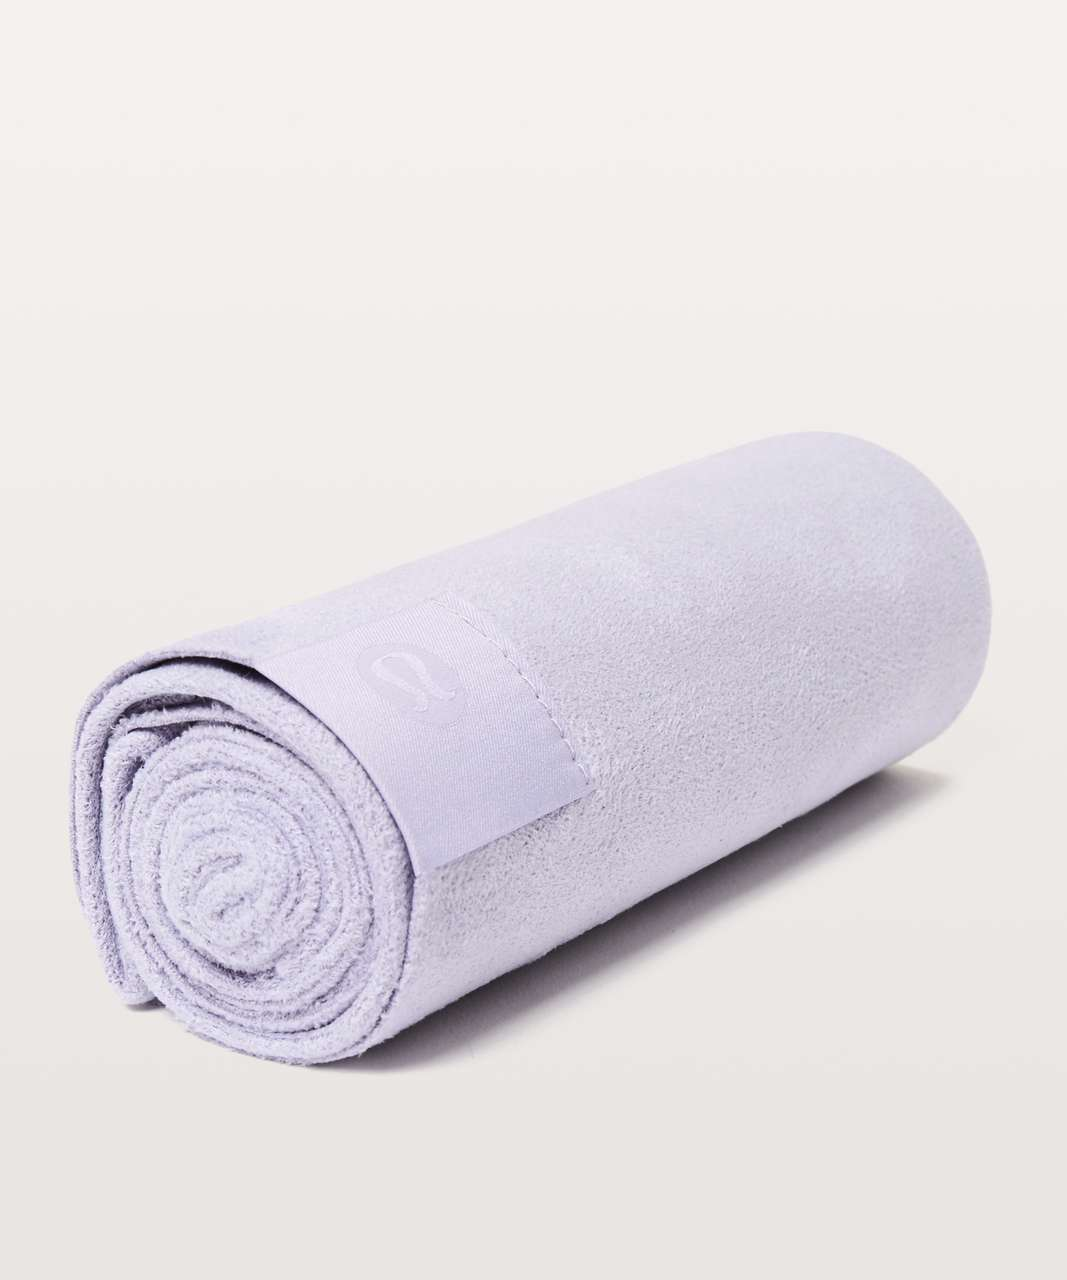 Lululemon The (Small) Towel - Misty Moon